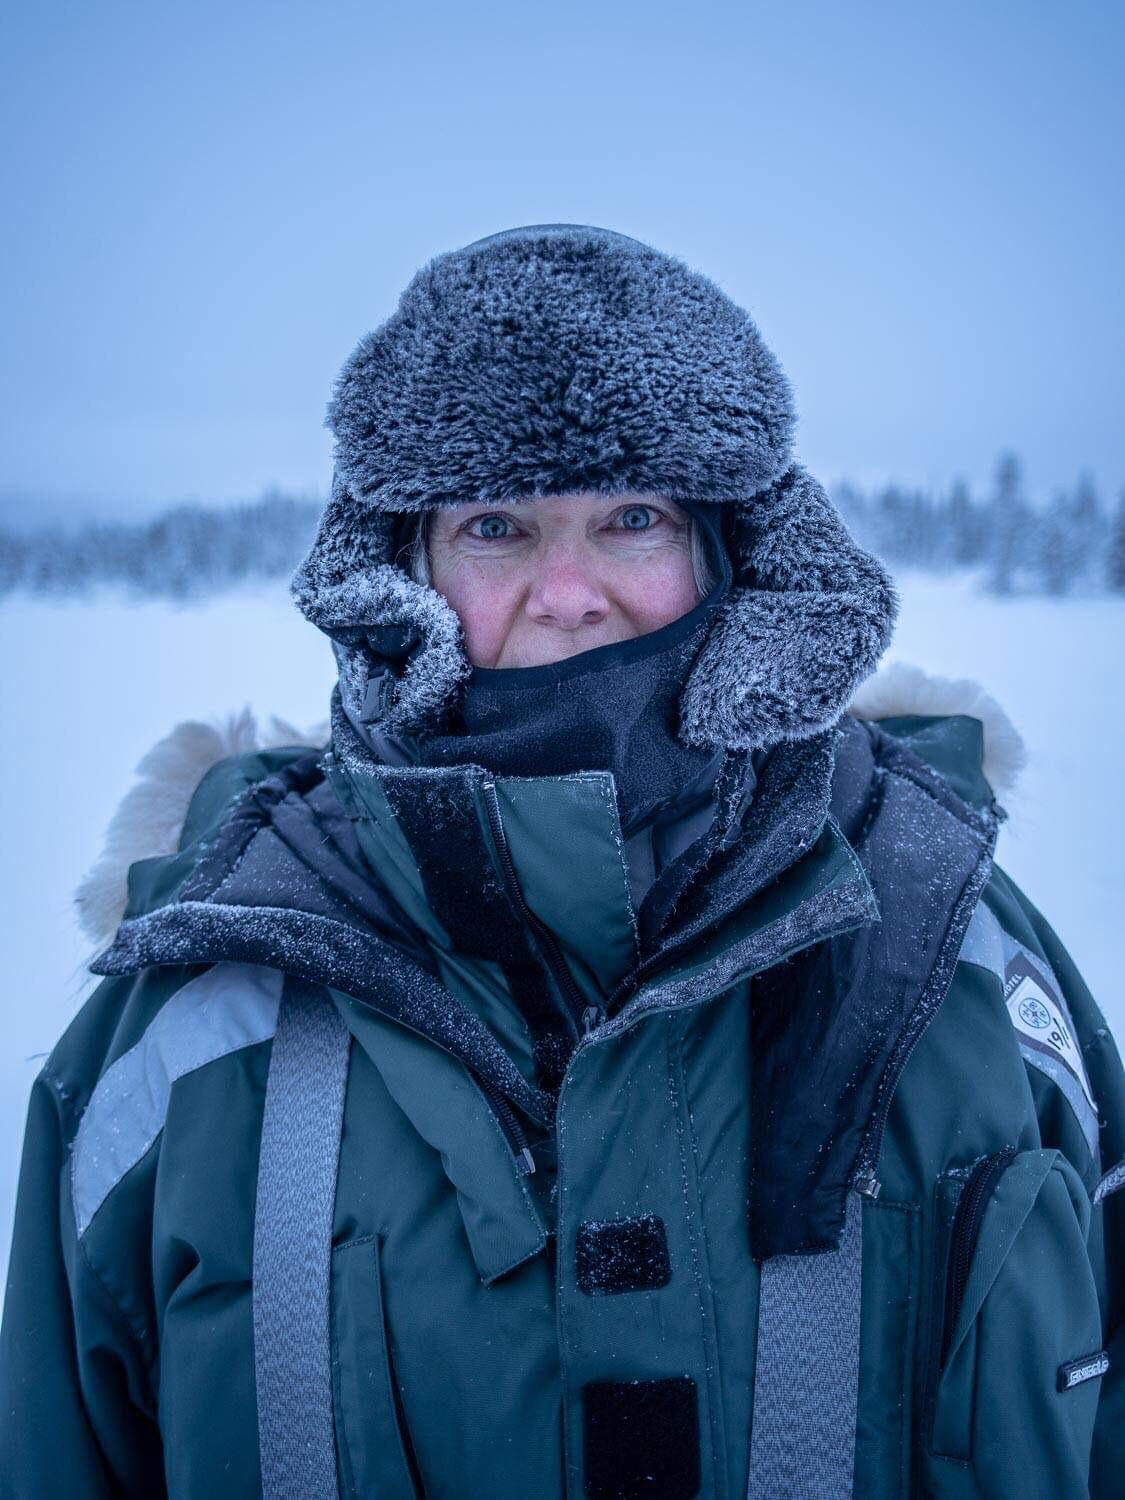 Our Senior Project Manager, Rhonda, learns how to dress for Lapland.